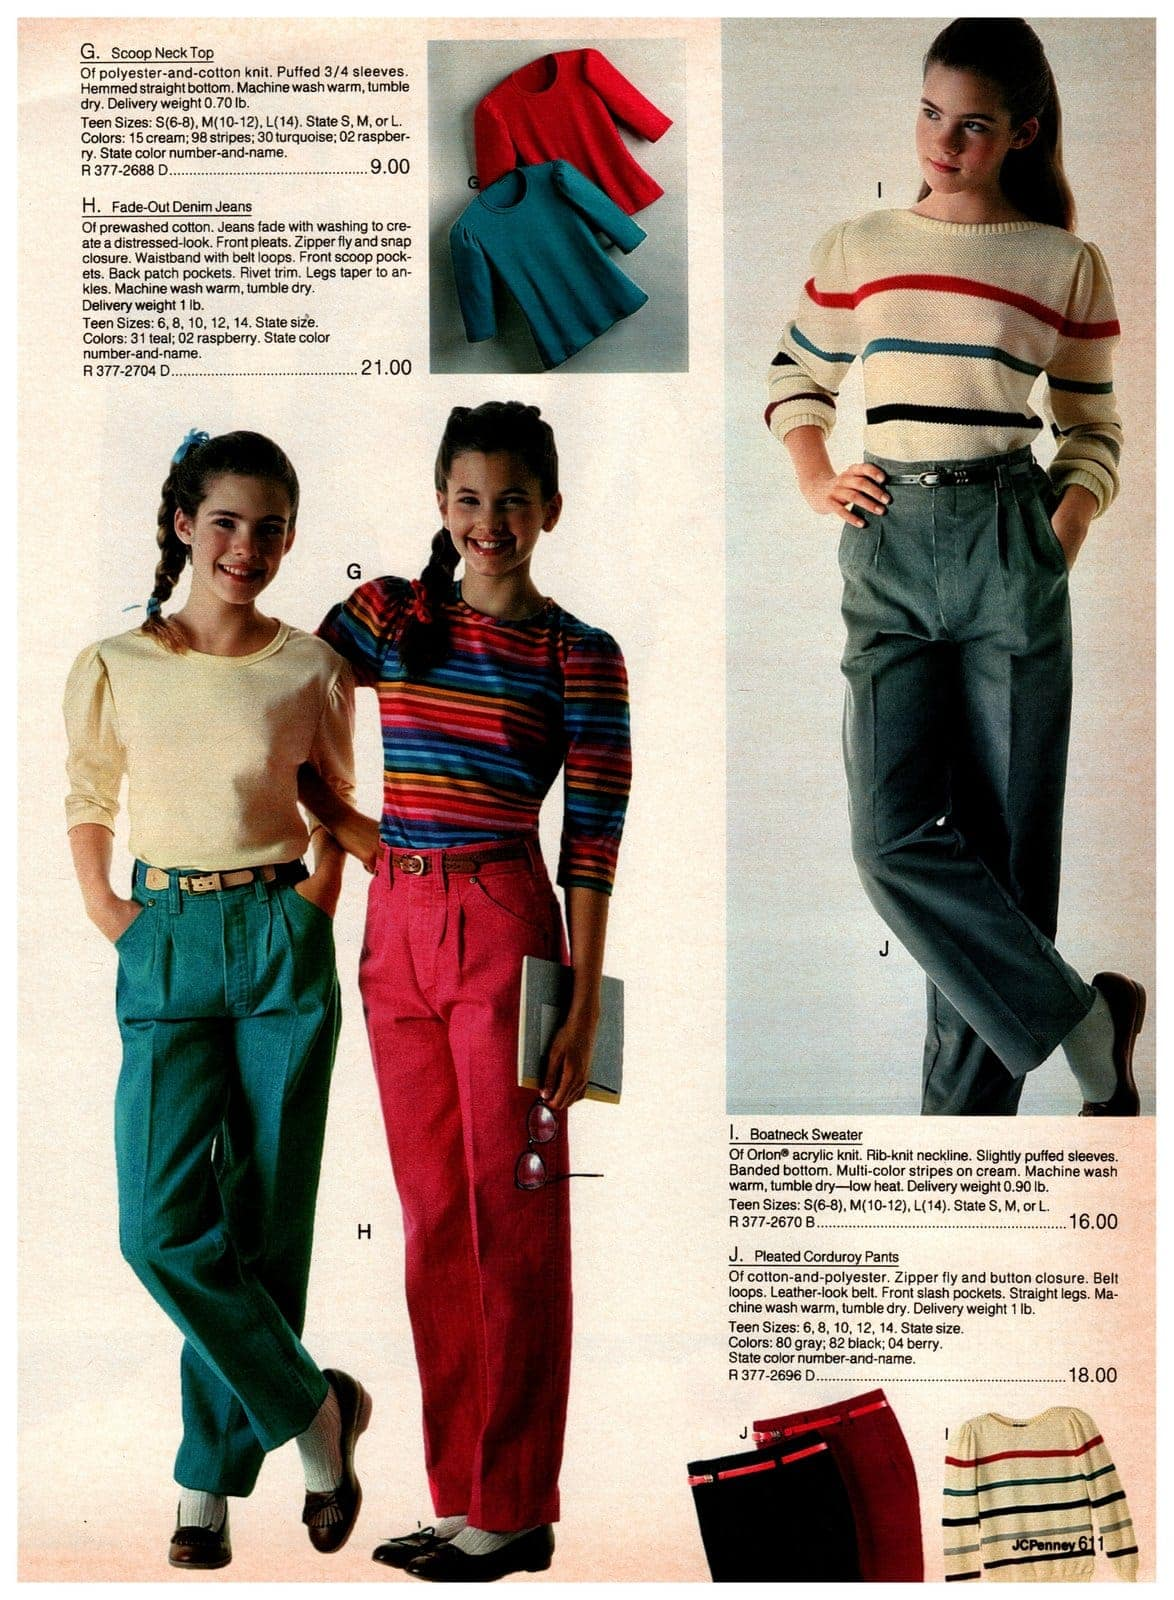 Vintage '80s scoop-neck top, fade-out denim jeans, boatneck sweaters and pleated corduroy pants for pre-teens